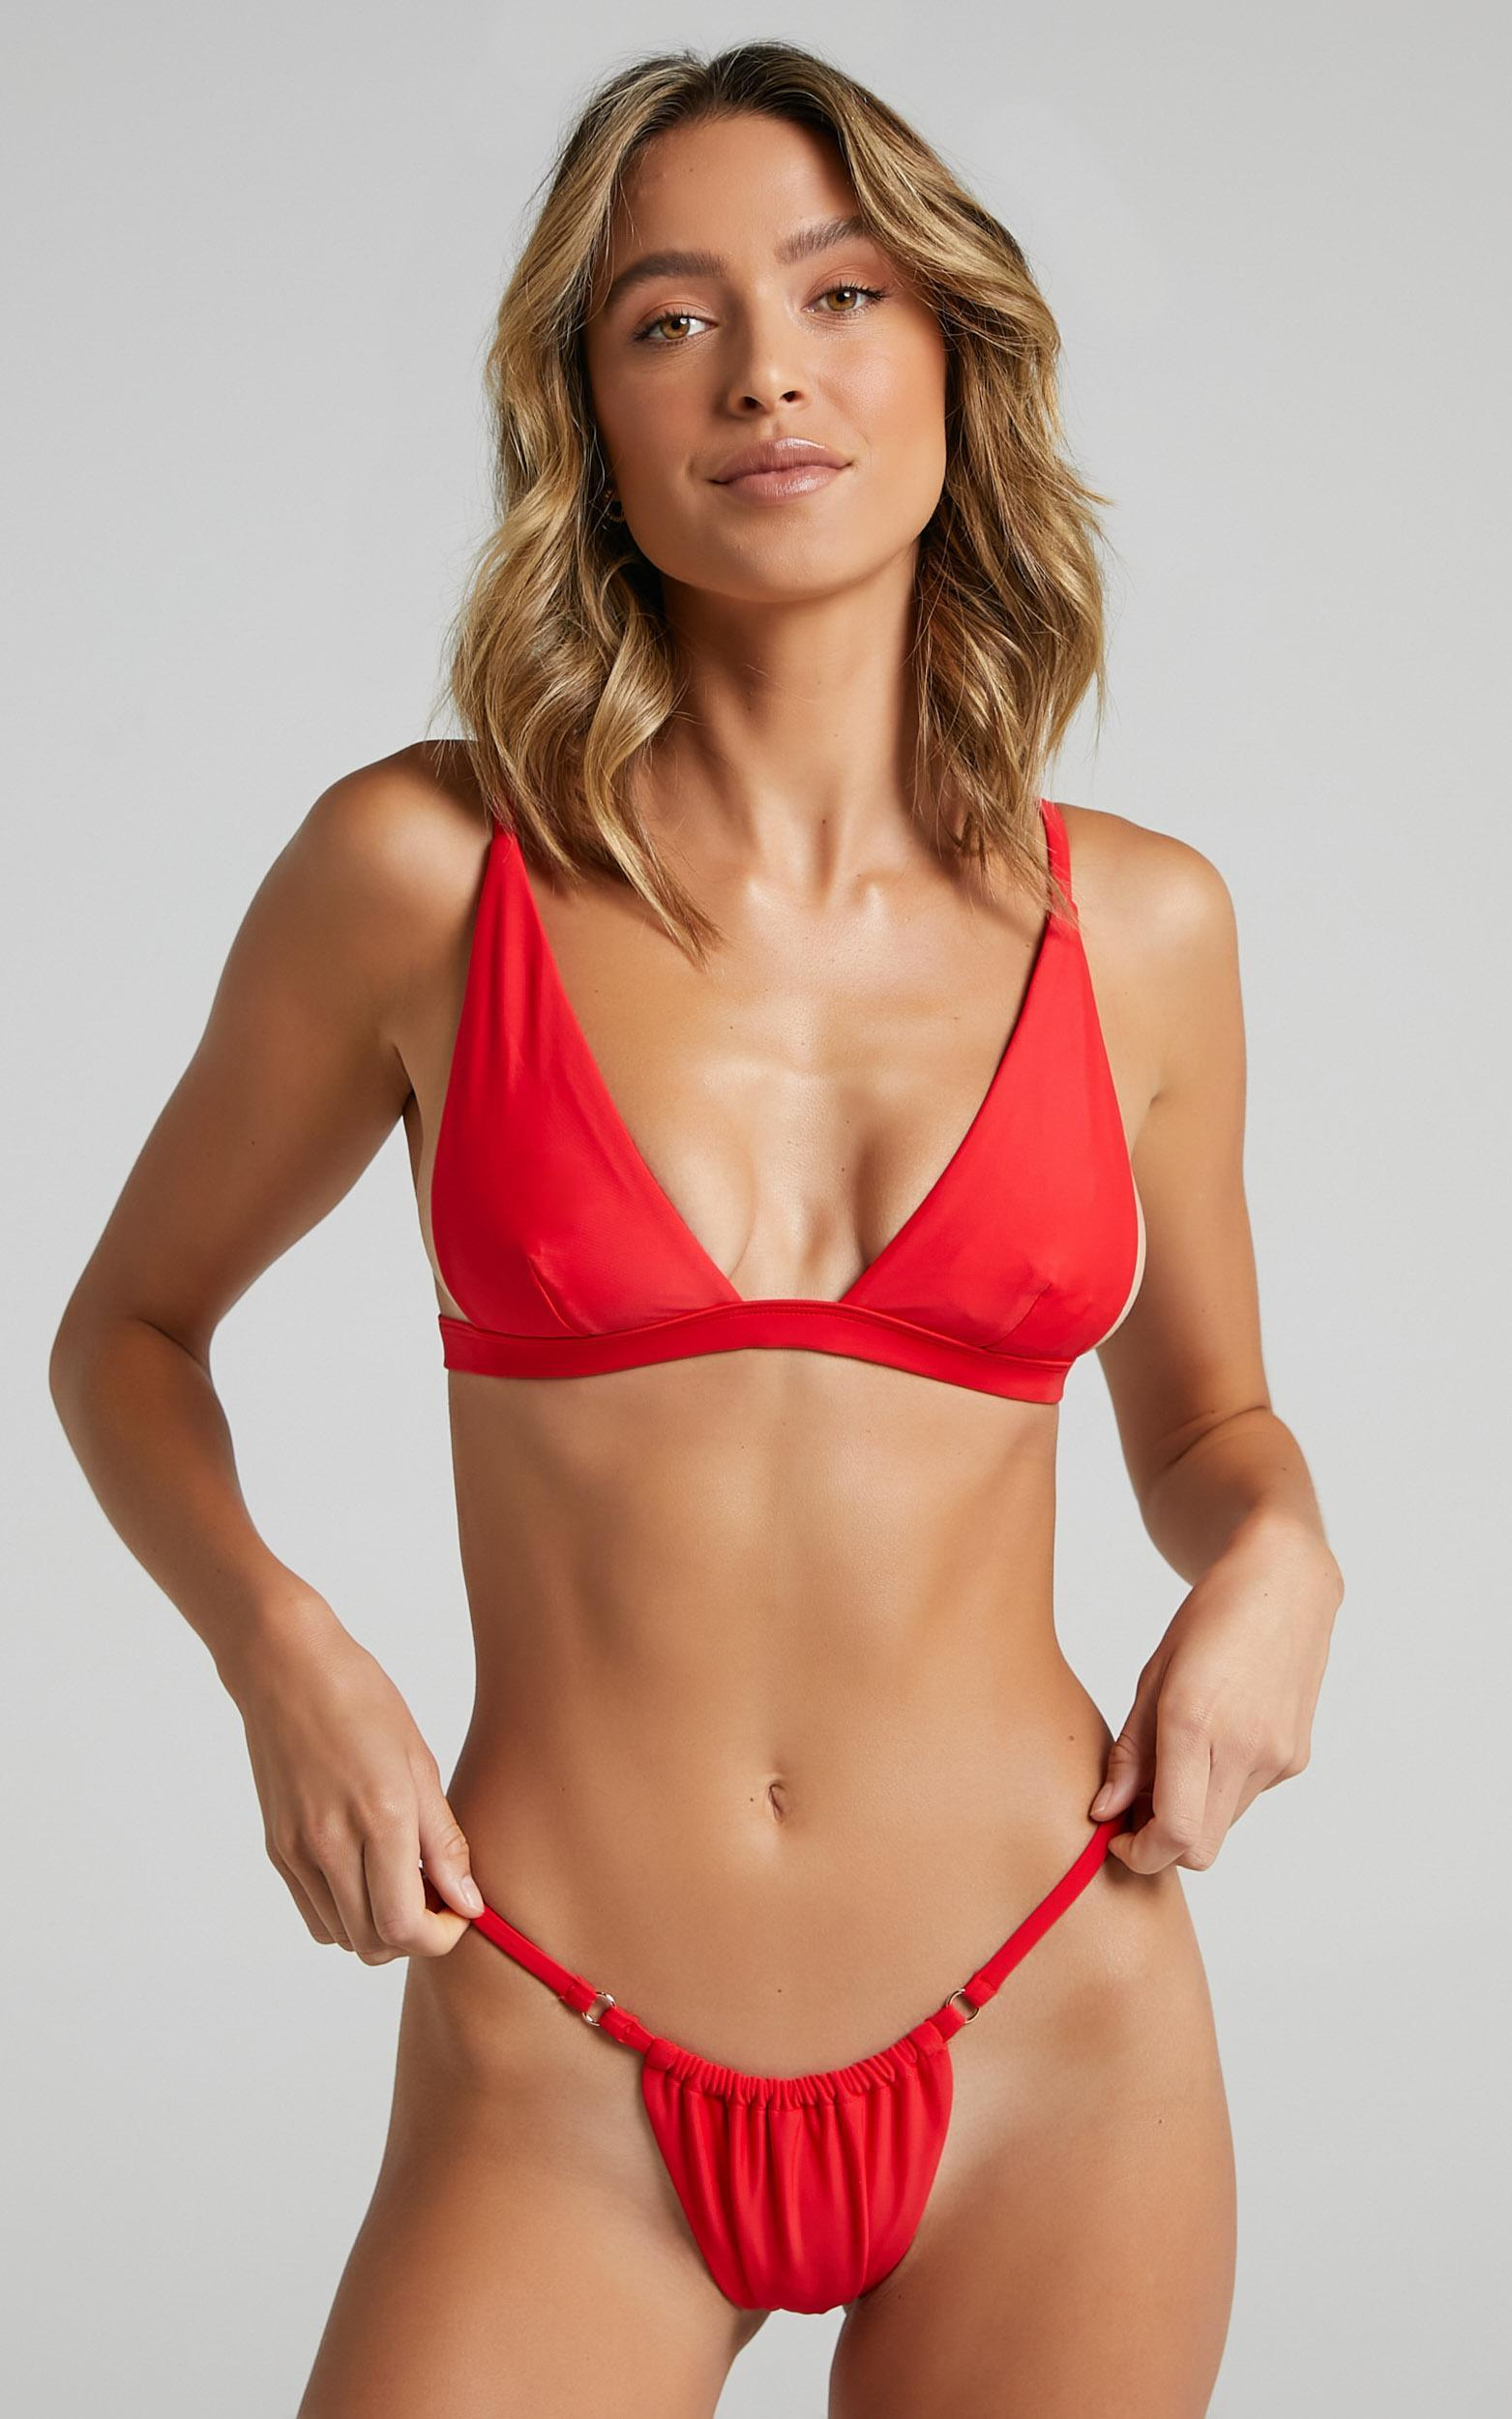 Twiin - New Era Triangle Bikini Top in Red - XS, RED1, hi-res image number null